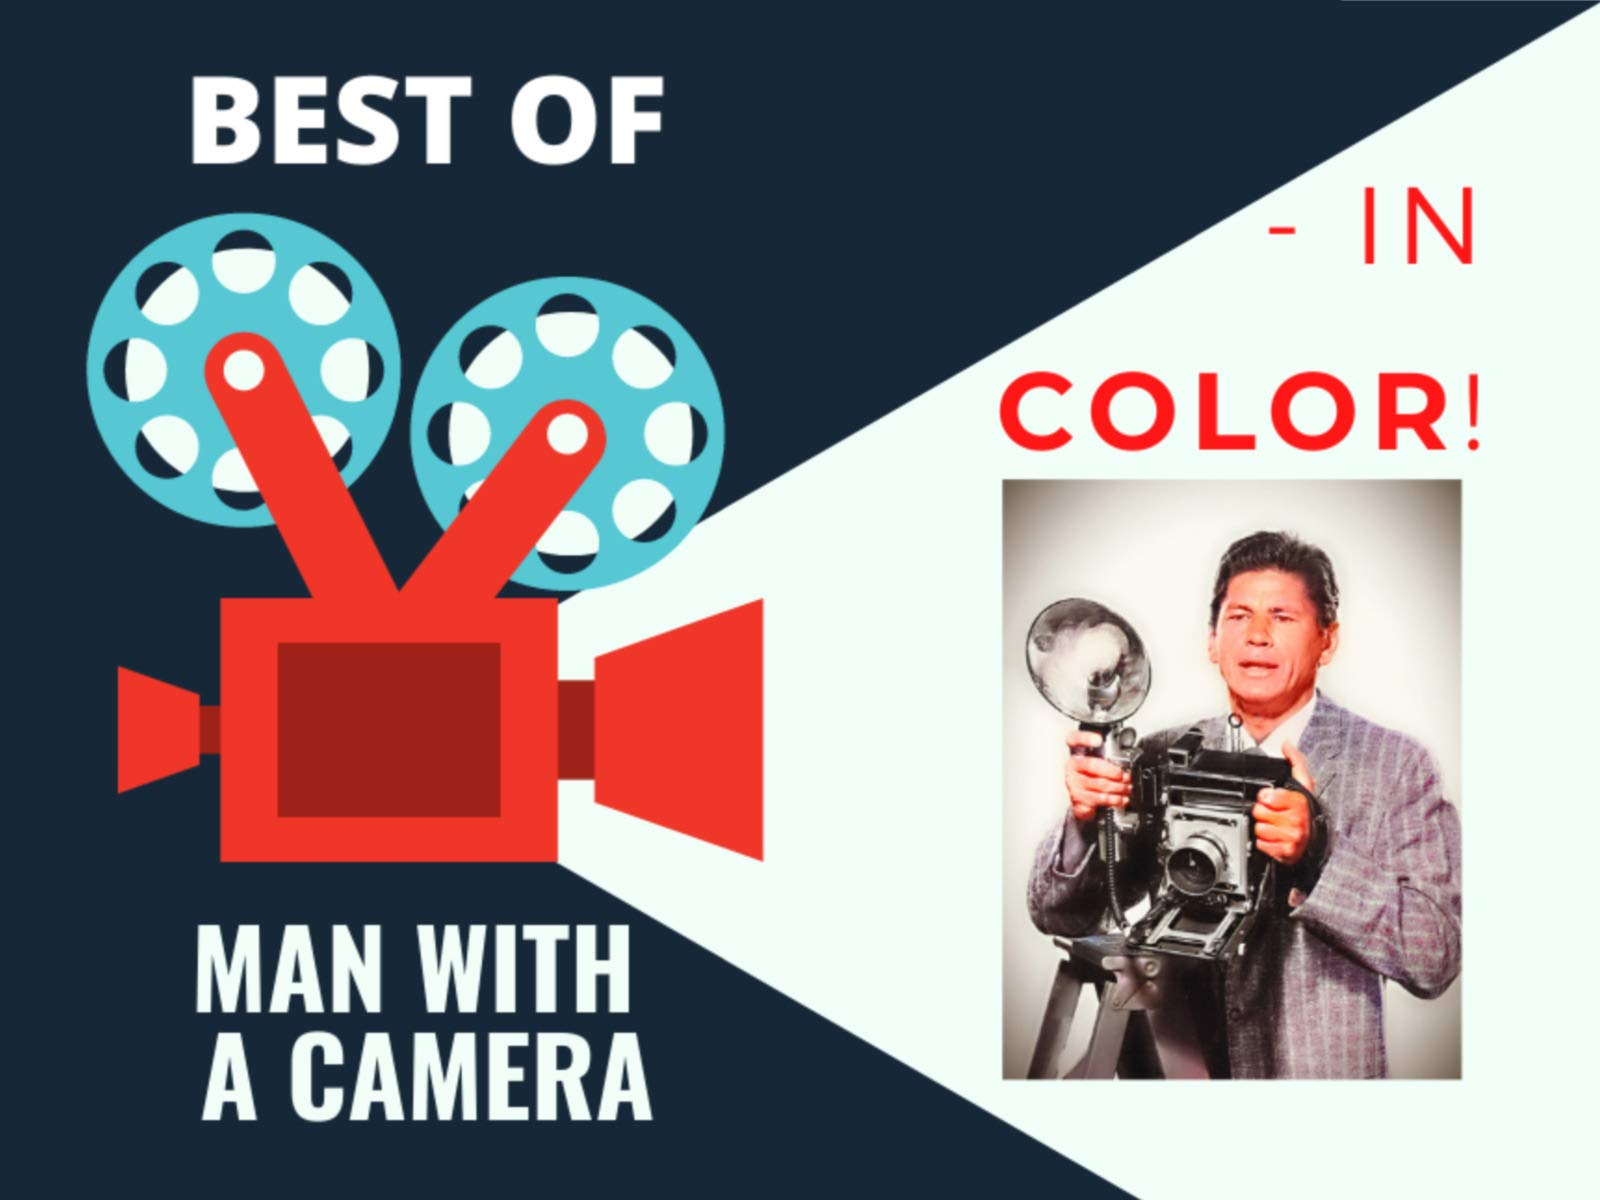 Best Of Man With A Camera - In Color! - Season 1